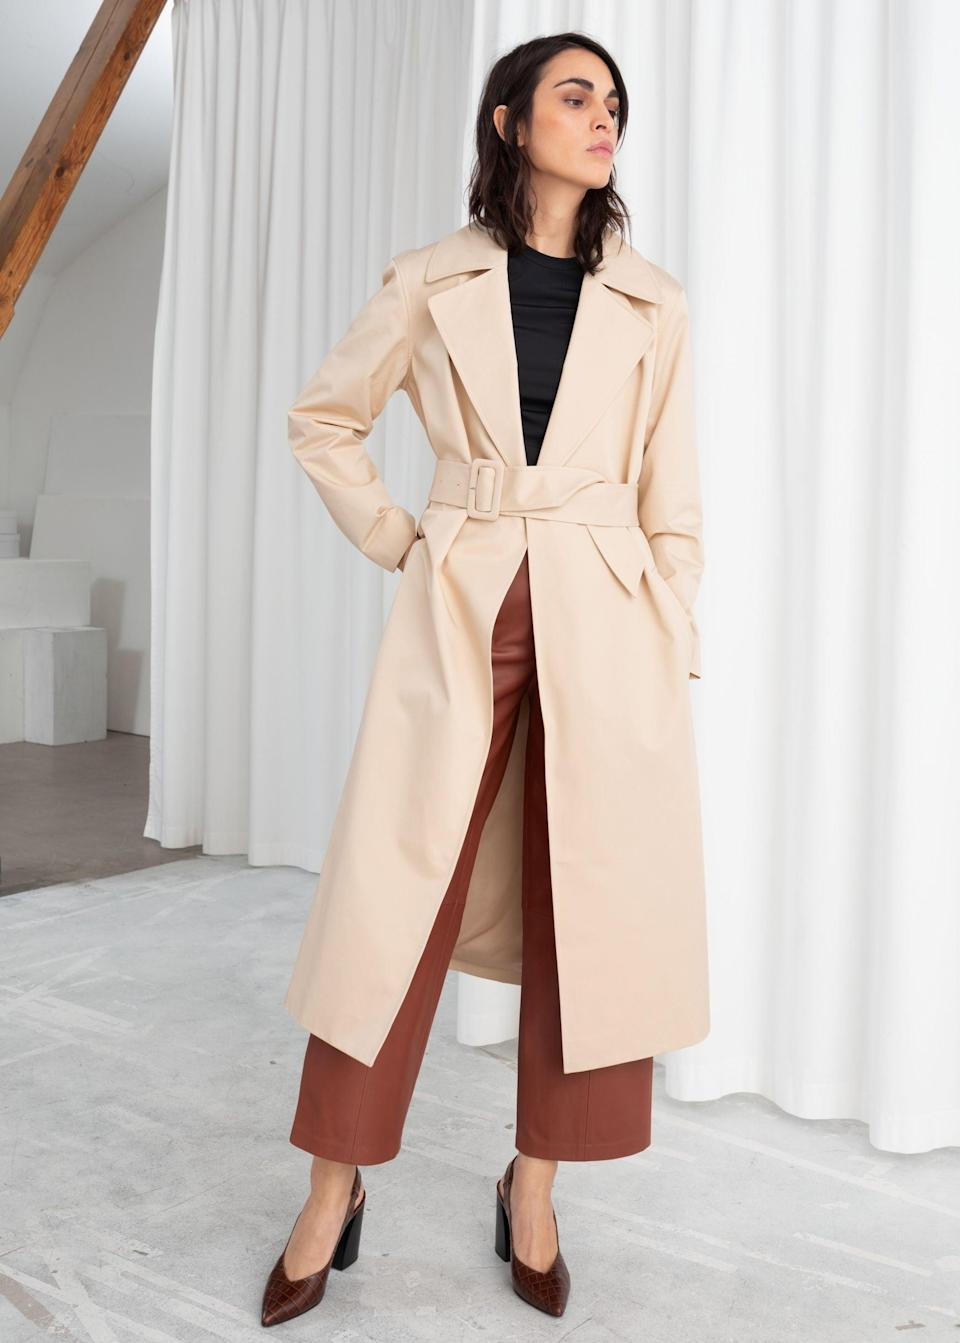 """<br><br><strong>& Other Stories</strong> Belted Cotton Twill Trenchcoat, $, available at <a href=""""https://www.stories.com/en_gbp/clothing/jackets-and-coats/trench-coats/product.belted-cotton-twill-trenchcoat-beige.0700480002.html"""" rel=""""nofollow noopener"""" target=""""_blank"""" data-ylk=""""slk:& Other Stories"""" class=""""link rapid-noclick-resp"""">& Other Stories</a>"""